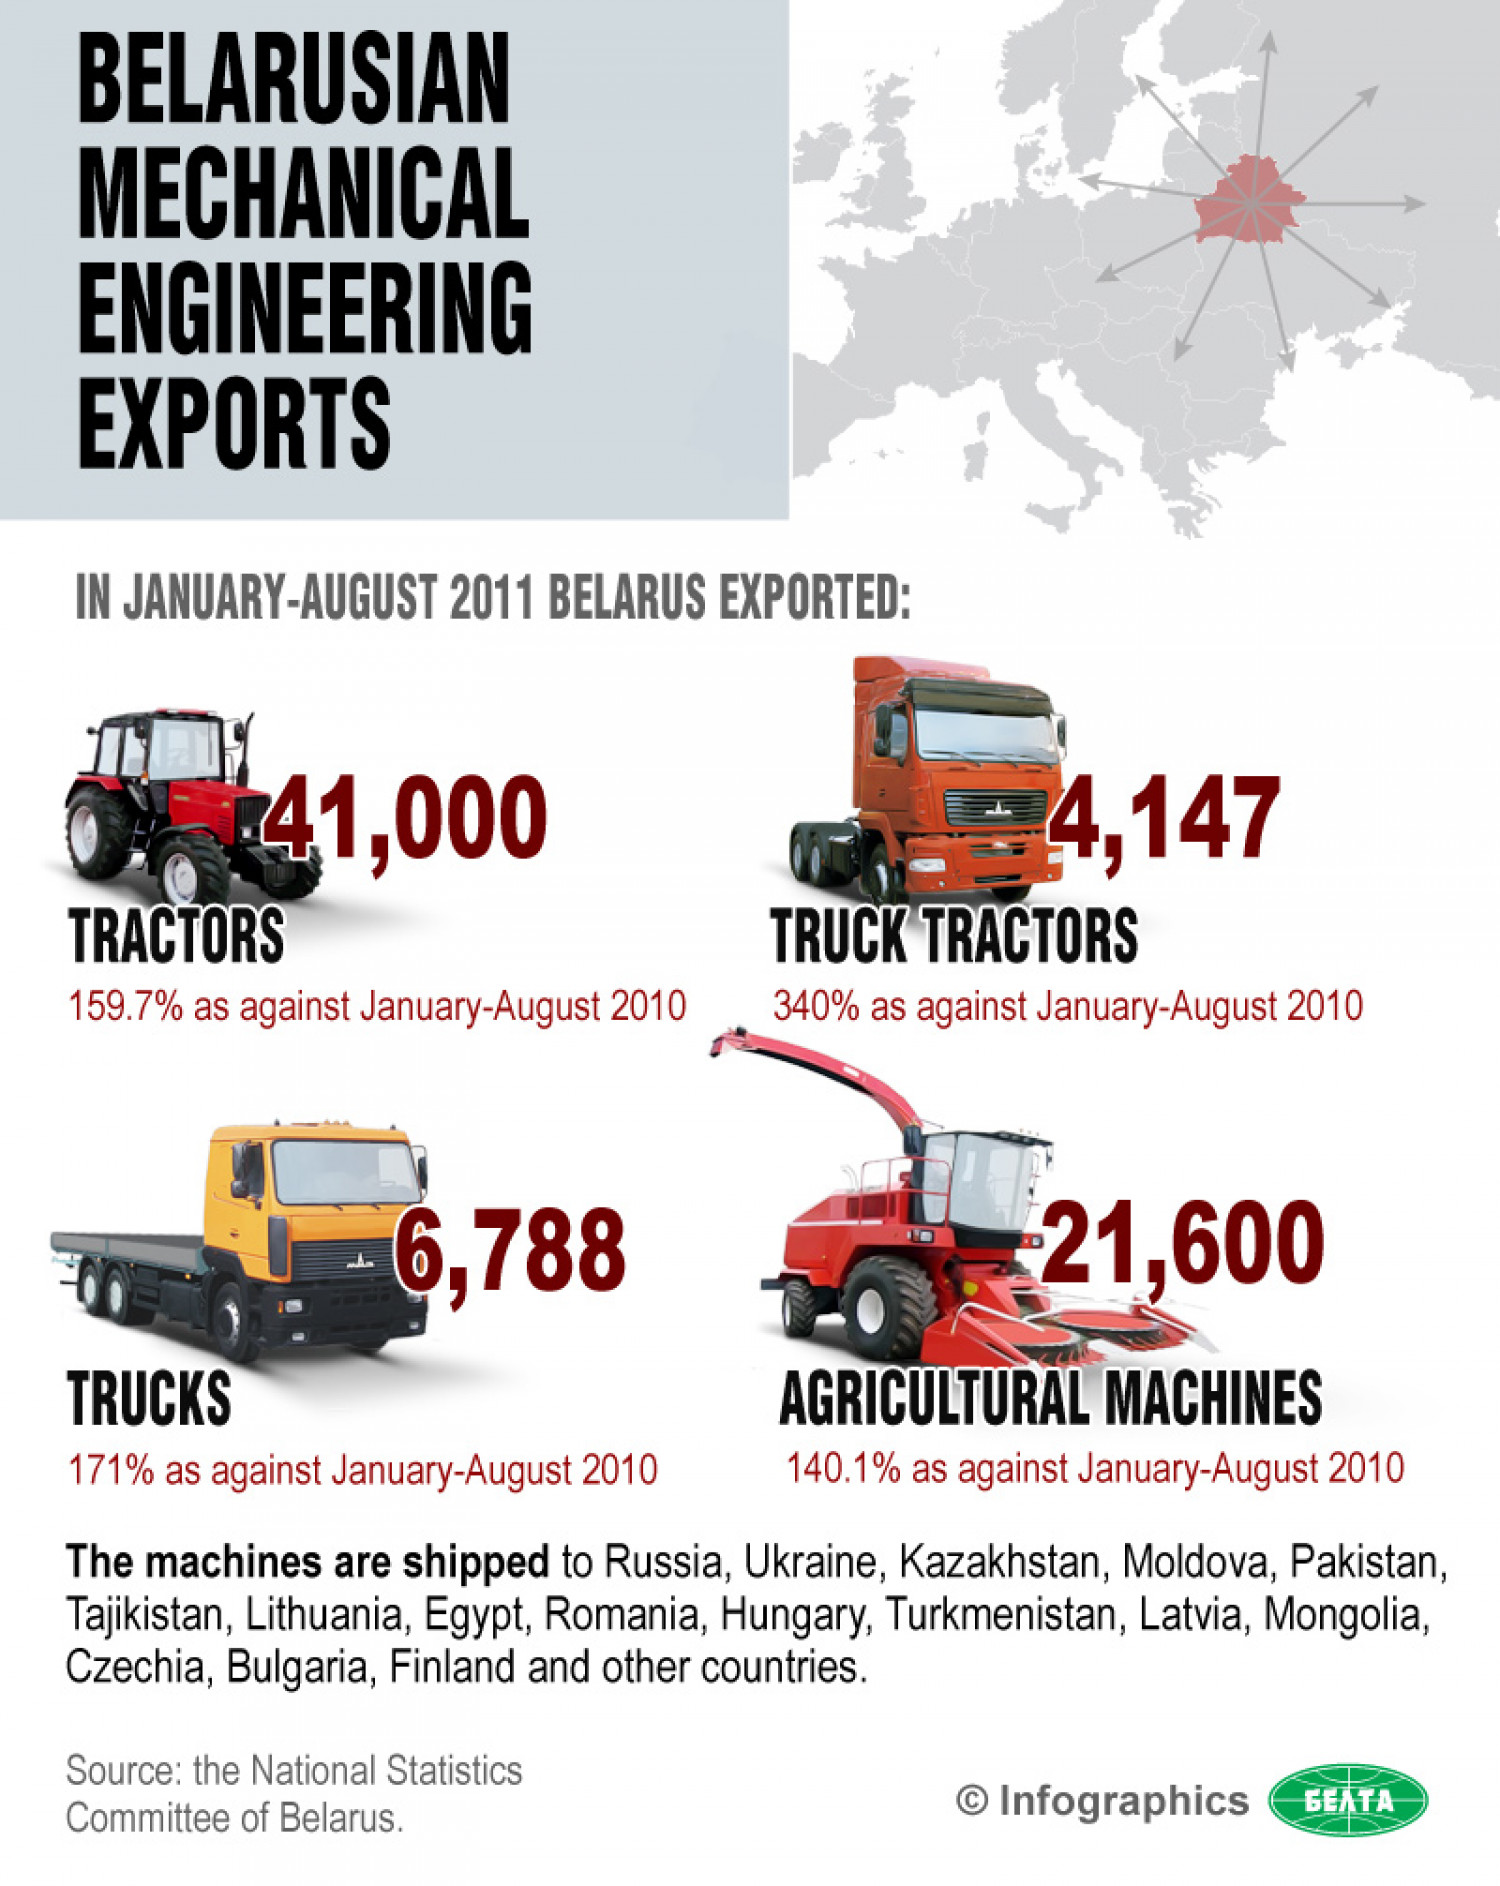 Belarusian Mechanical Engineering Exports Infographic